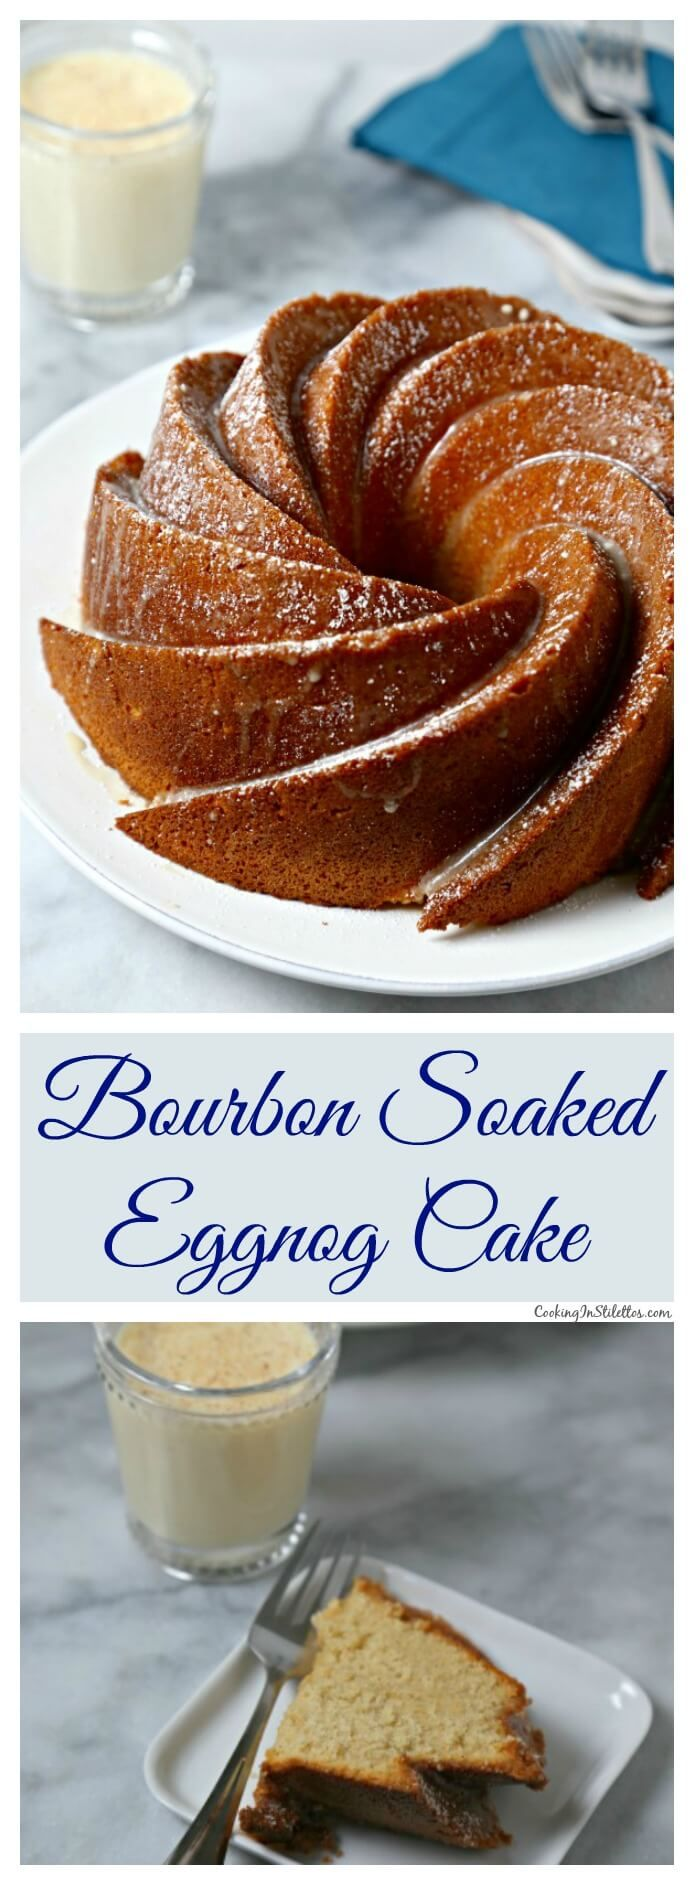 Bourbon Soaked Eggnog Cake from CookingInStilettos.com is a dessert showstopper. A moist rich eggnog cake with hints of spice and bourbon and drizzled with a bourbon eggnog glaze. ~ http://cookinginstilettos.com